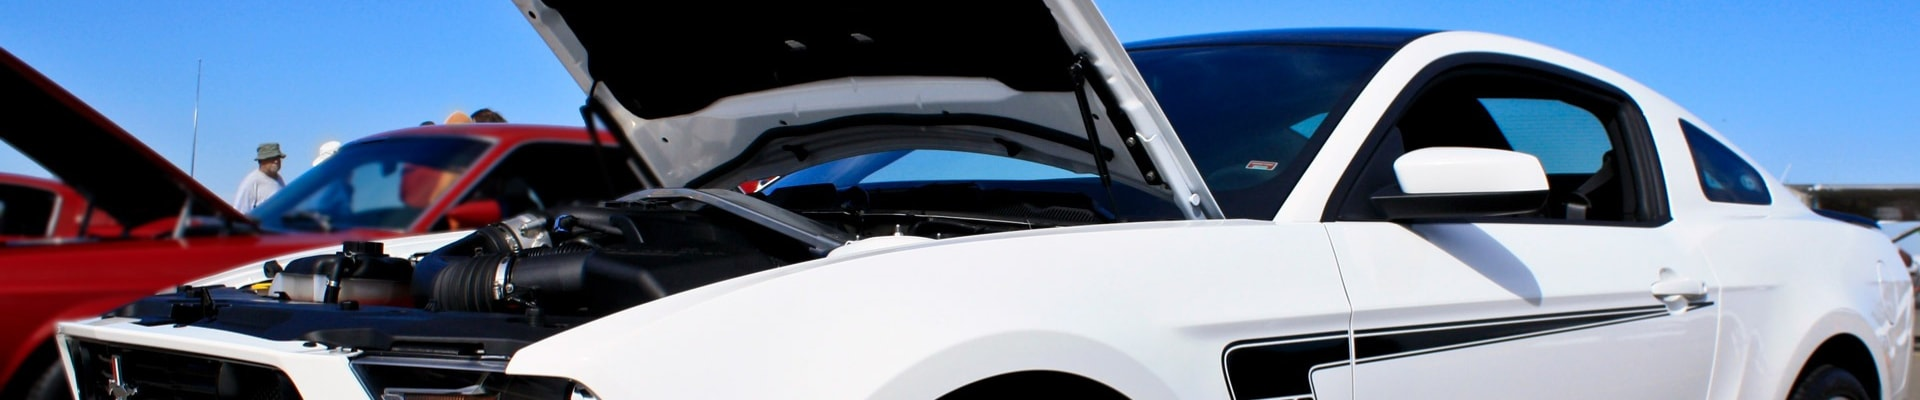 Close up view of a white Ford Mustang with the hood raised looking at the engine and checking out the inner mechanics of the car